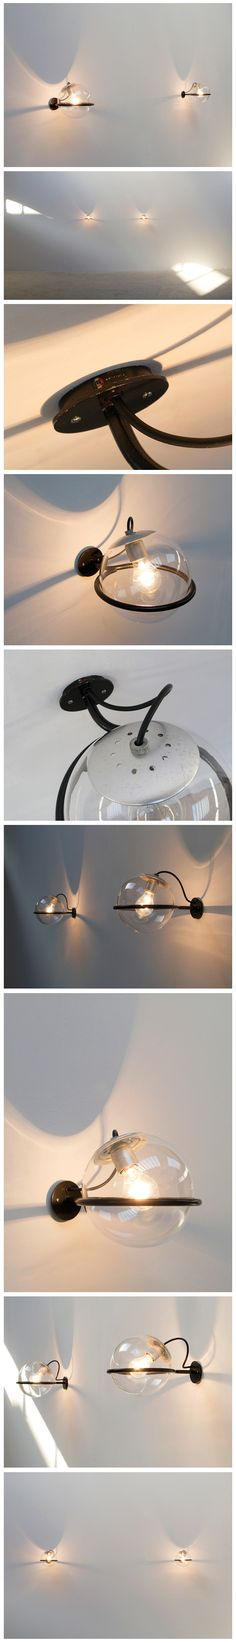 Nordic Pendant Lights Globe Glass Pendant Lamp Chrome Mirror Ball Hanging Lamp Modern Home Lighting Kitchen Hanging Lamps A Plastic Case Is Compartmentalized For Safe Storage Pendant Lights